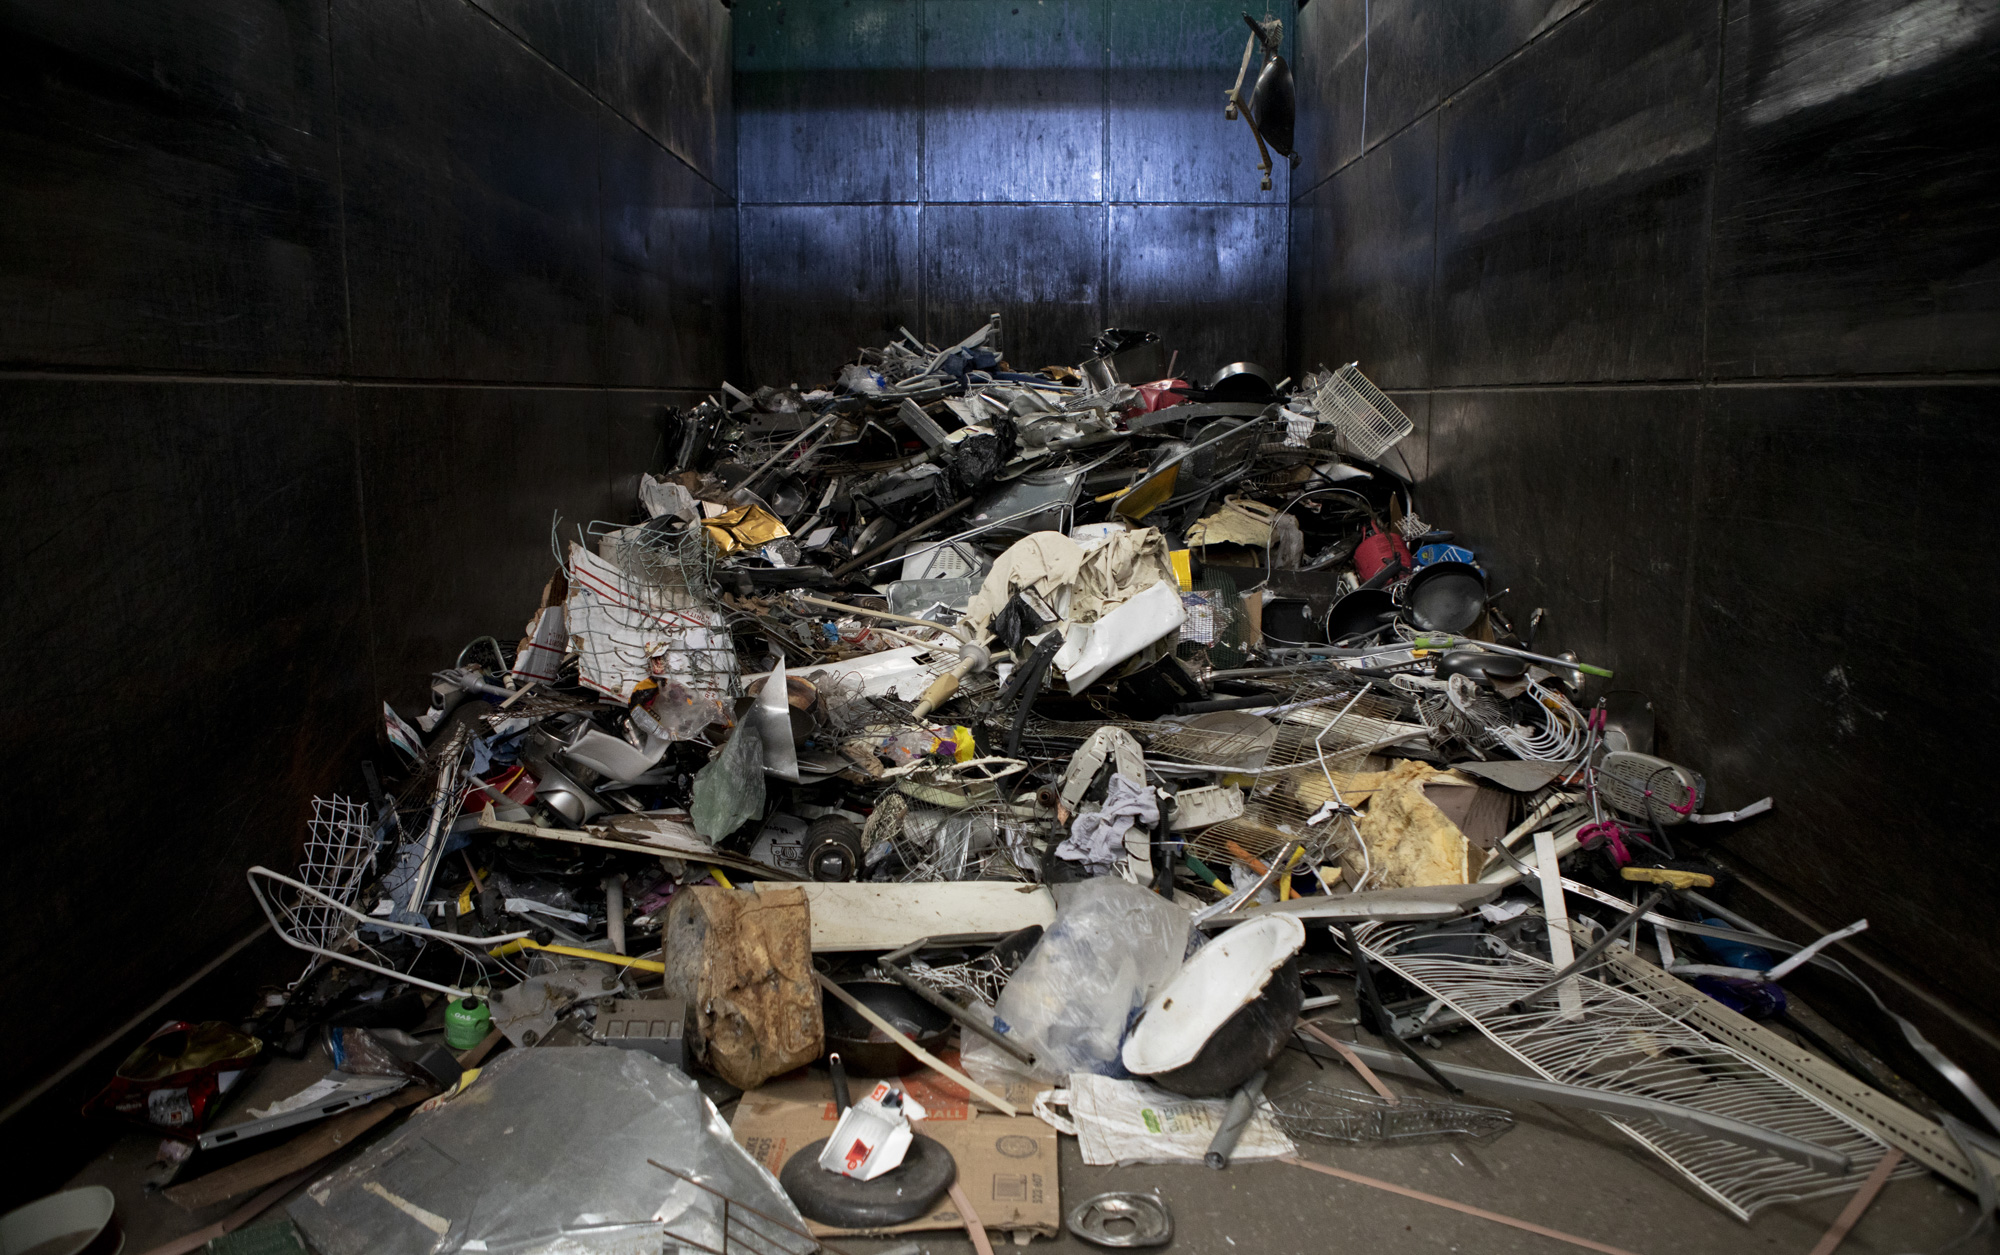 A large pile of metal that has been sorted out from paper and plastic at greenwaste on July 29, 2019. Photo by Anne Wernikoff/CalMatters